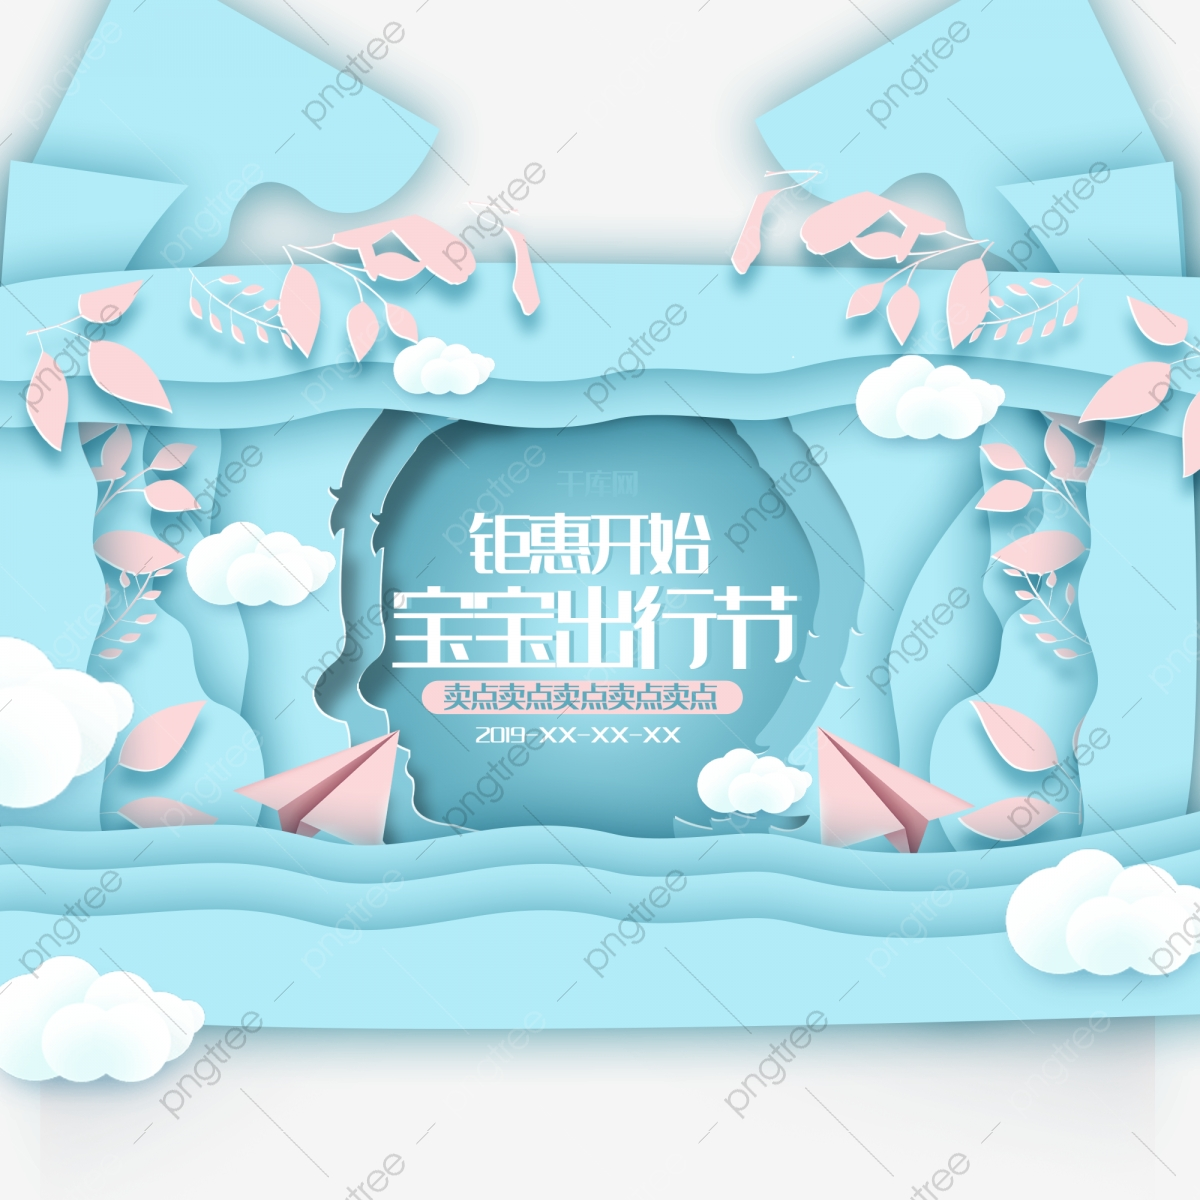 Baby Travel Festival Banner Blue Tone Banner Baby Blue Small Fresh Png Transparent Clipart Image And Psd File For Free Download